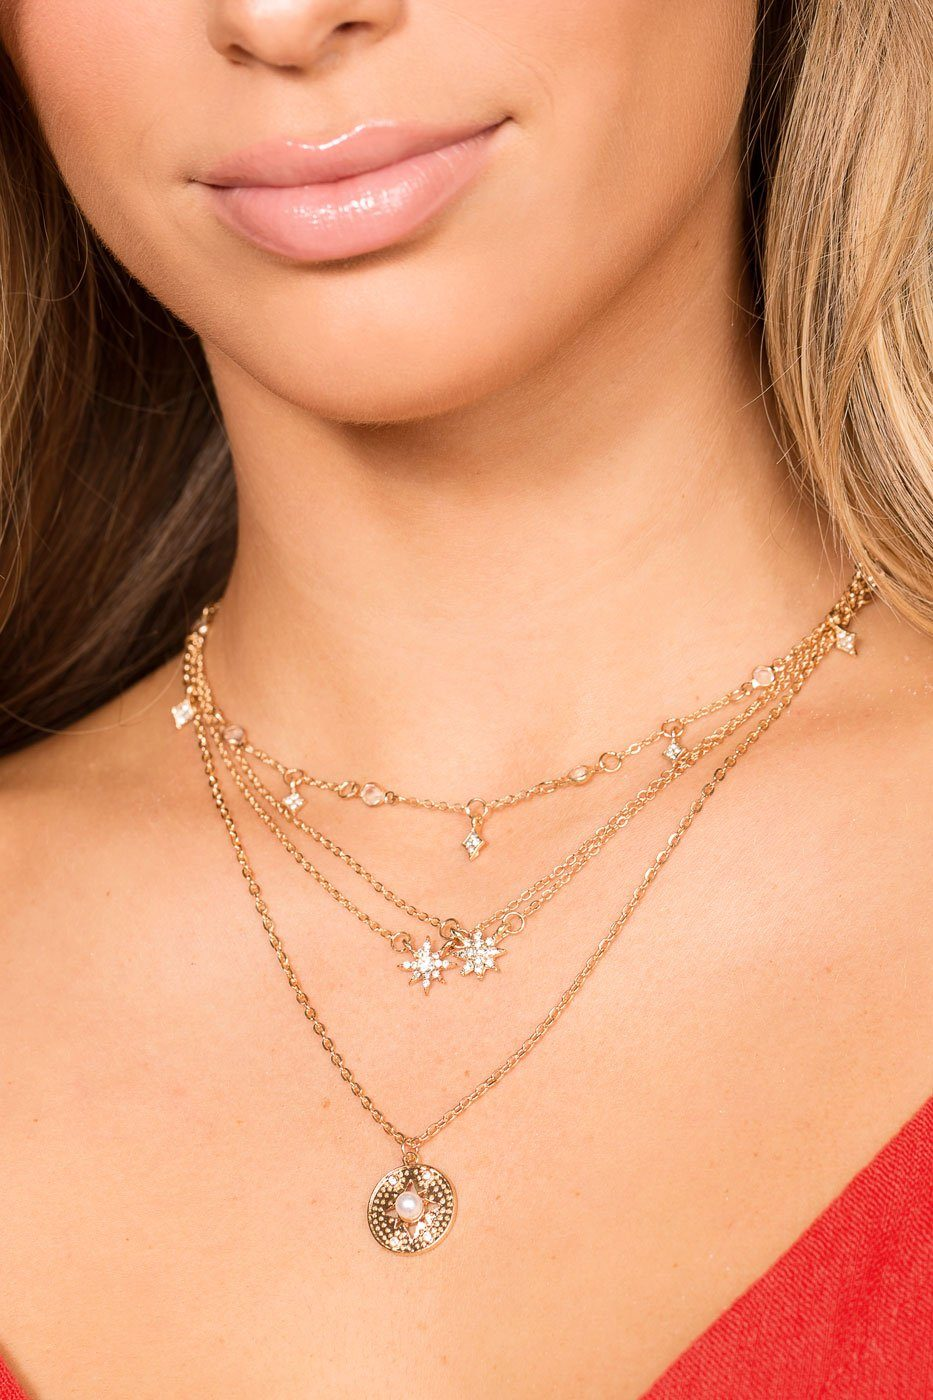 d3d905f922c Universal Appeal Layered Necklace